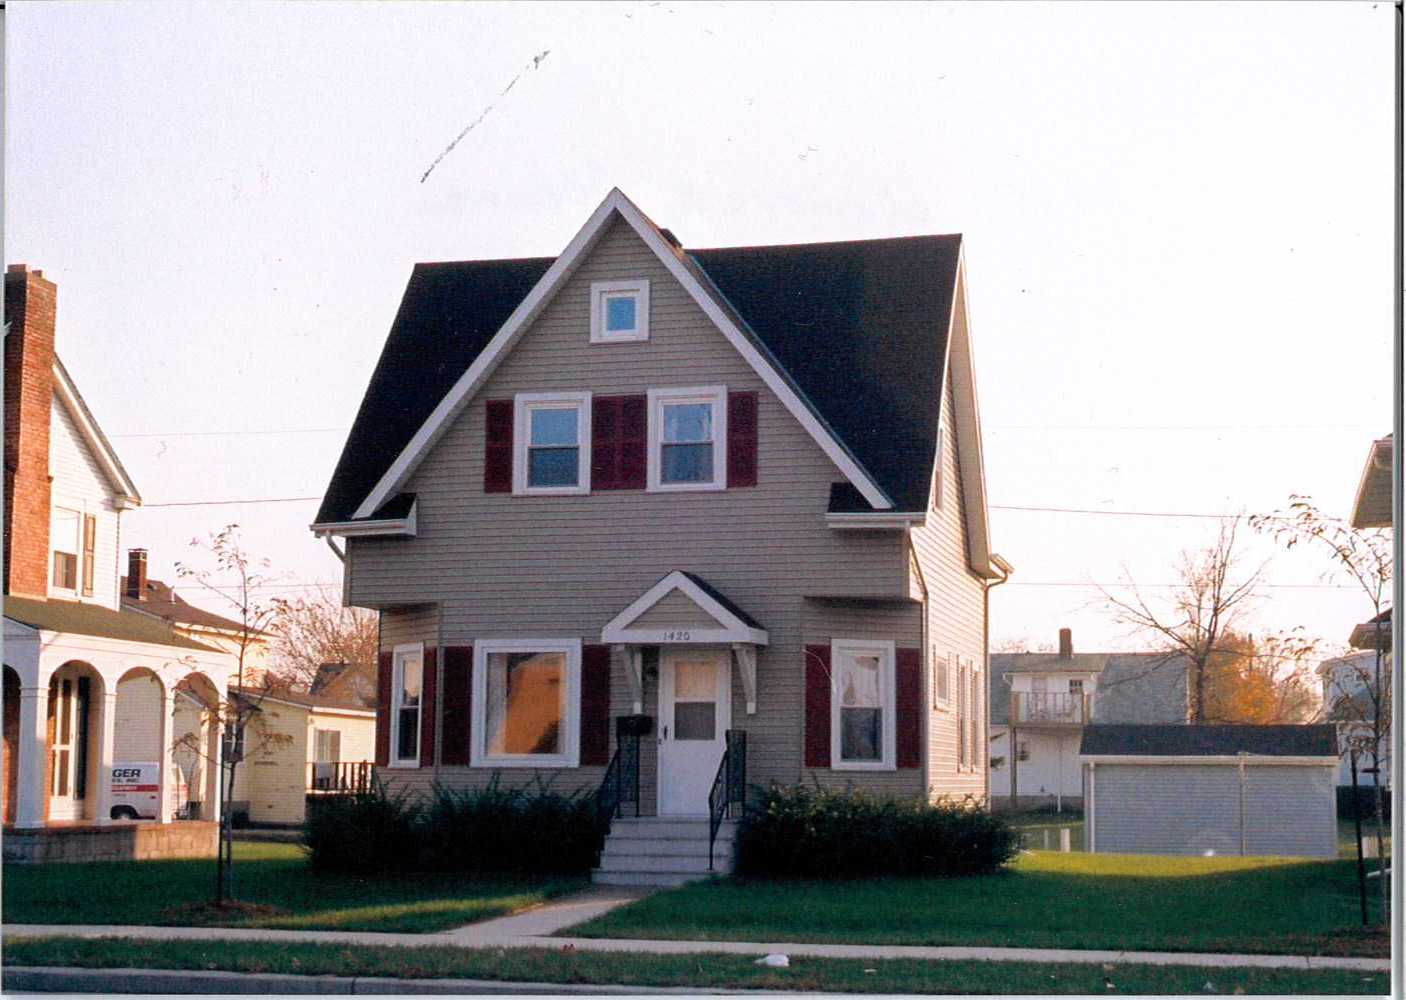 The residential house located at 1420 University Avenue.